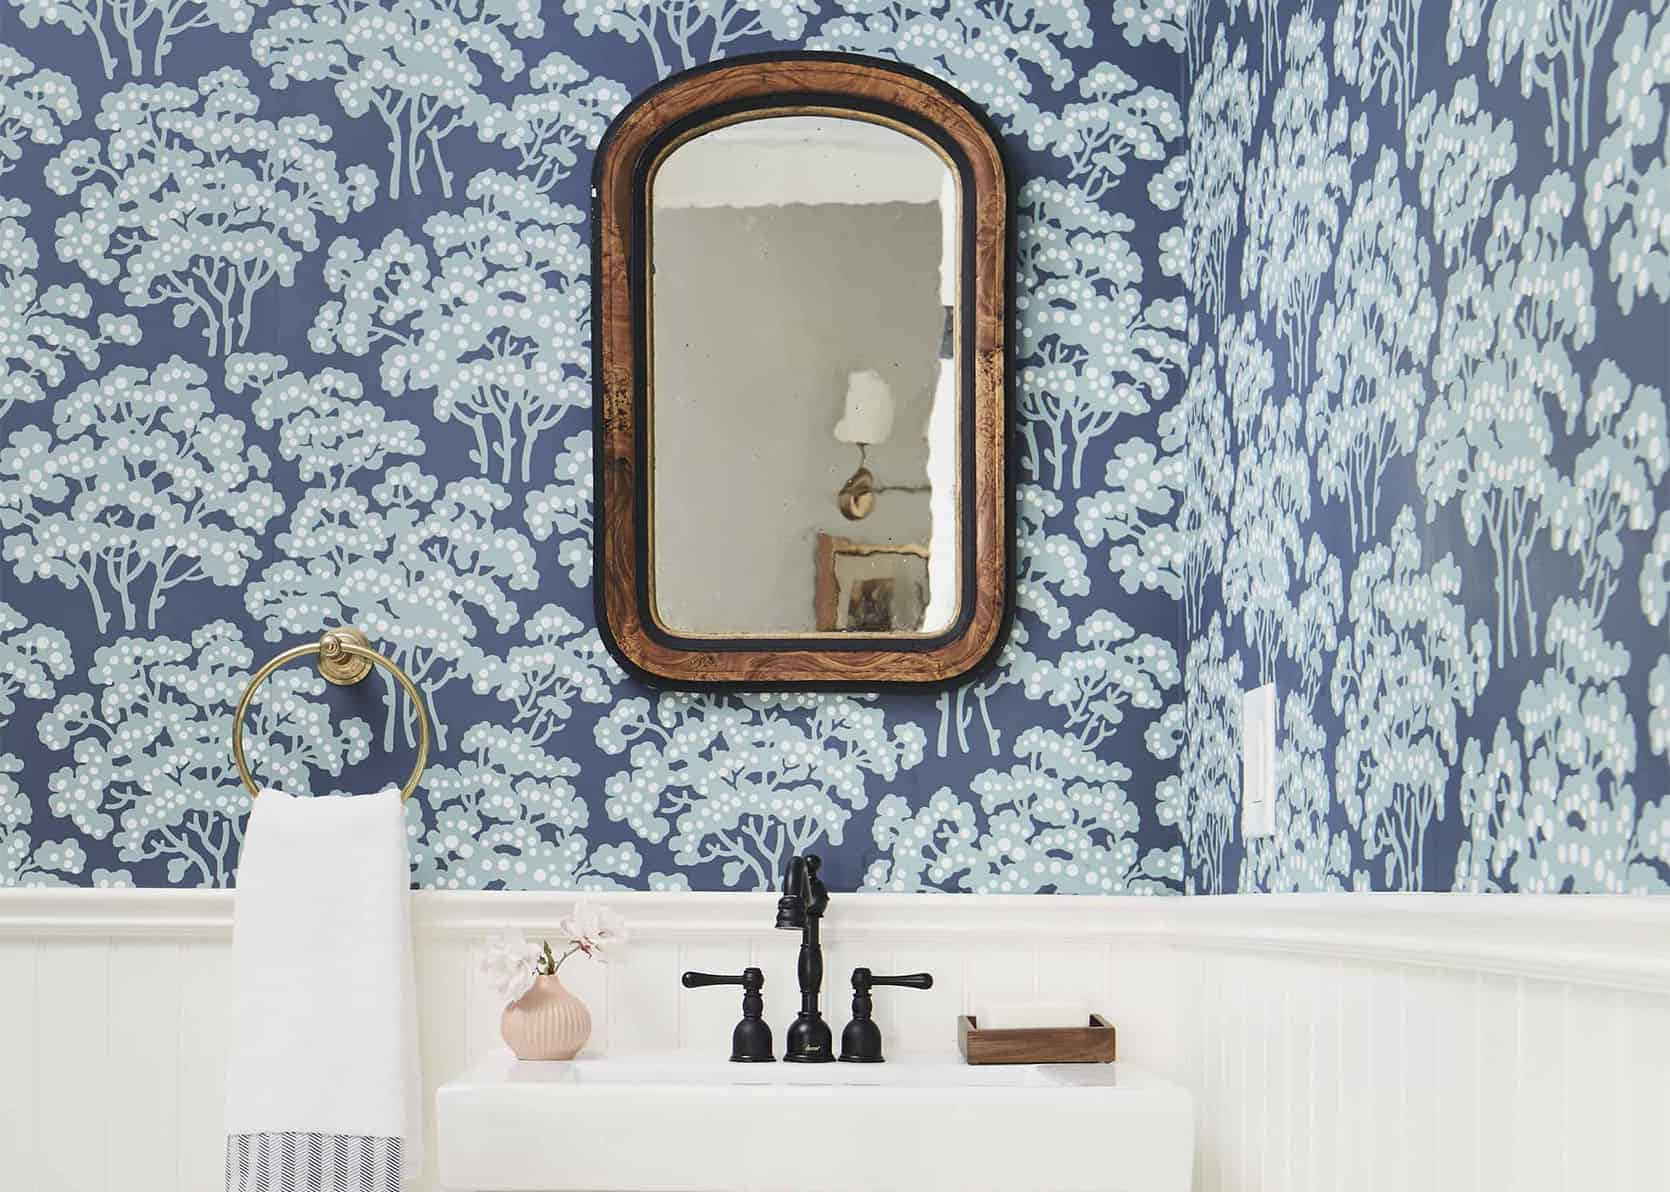 9 Affordable (Budget) Powder Room Designs (But LOTS Of Inspo And Products For Full Bath Renos)